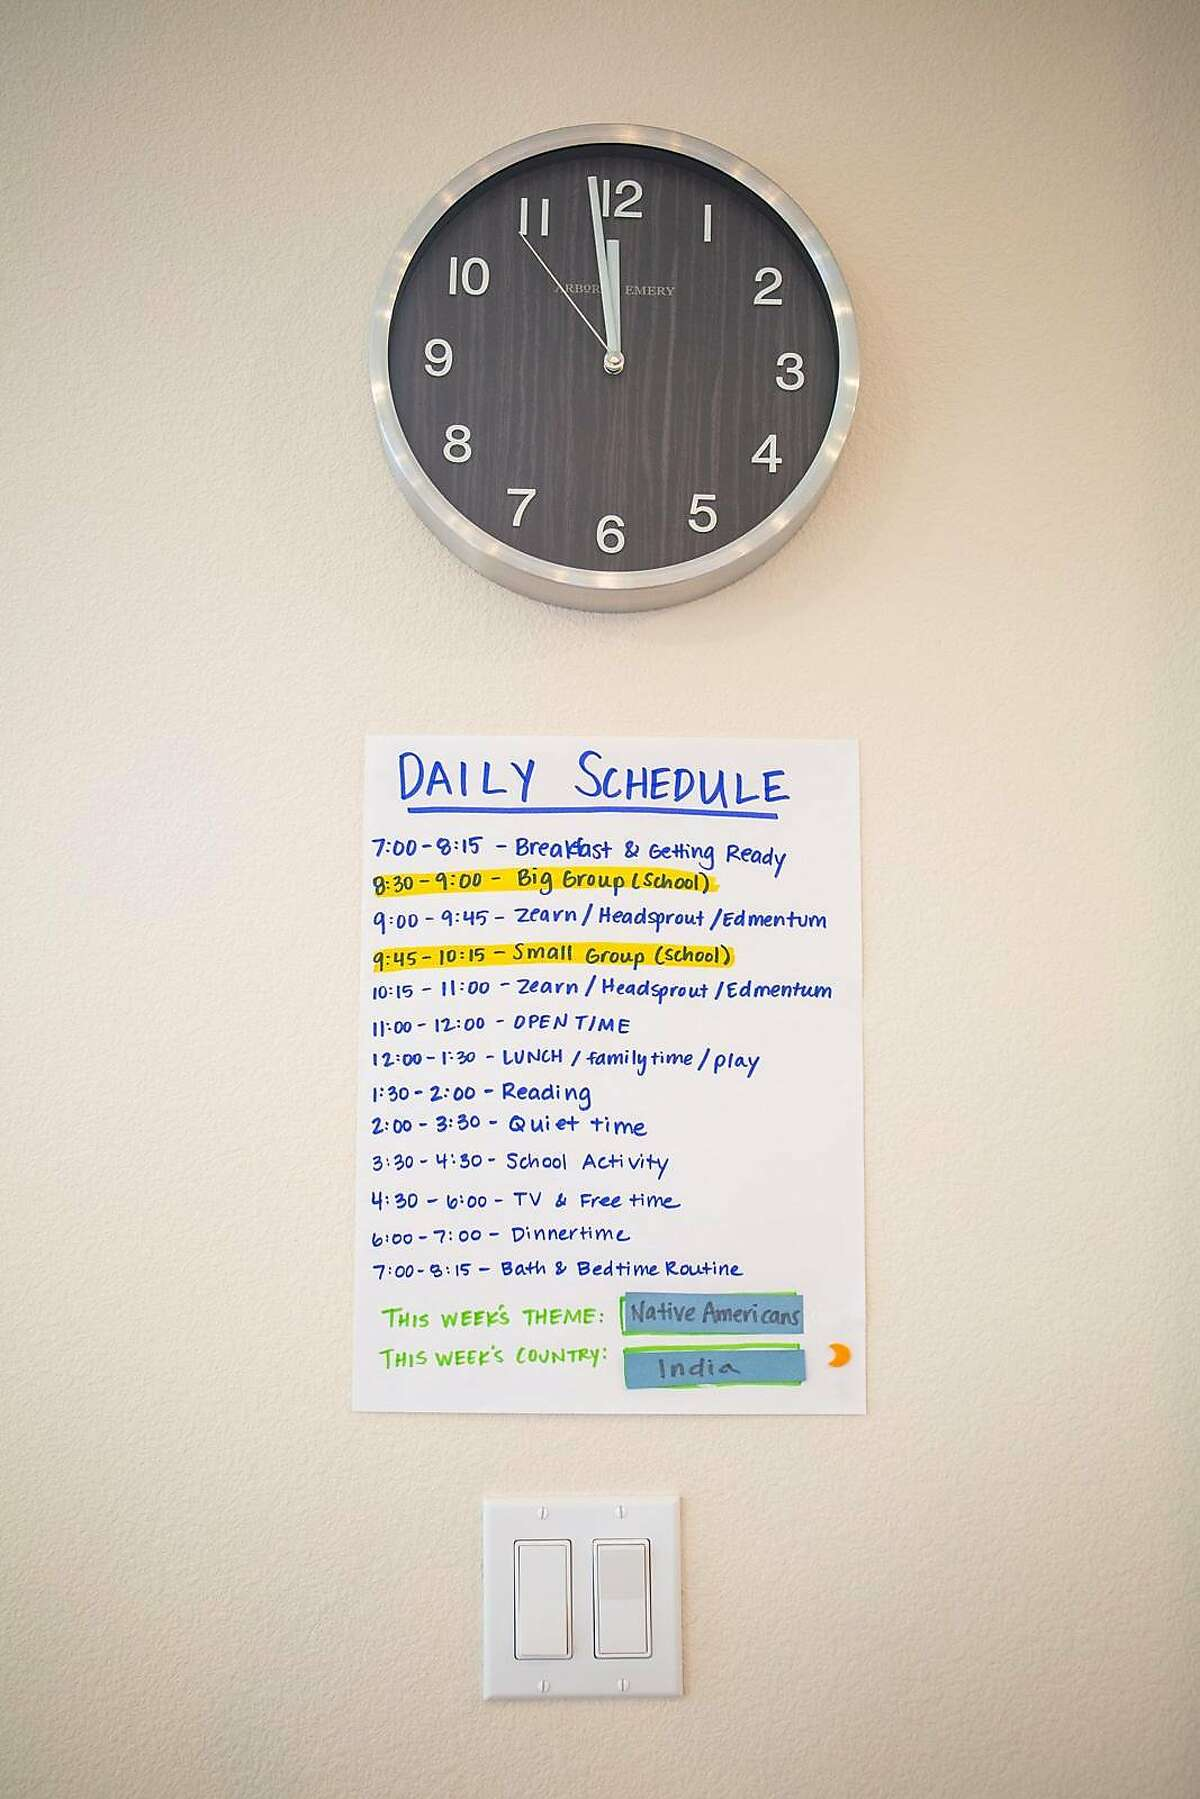 Heather Dundon, Henry's mother, added his daily schedule to their wall to add structure to his online kindergarten experience.